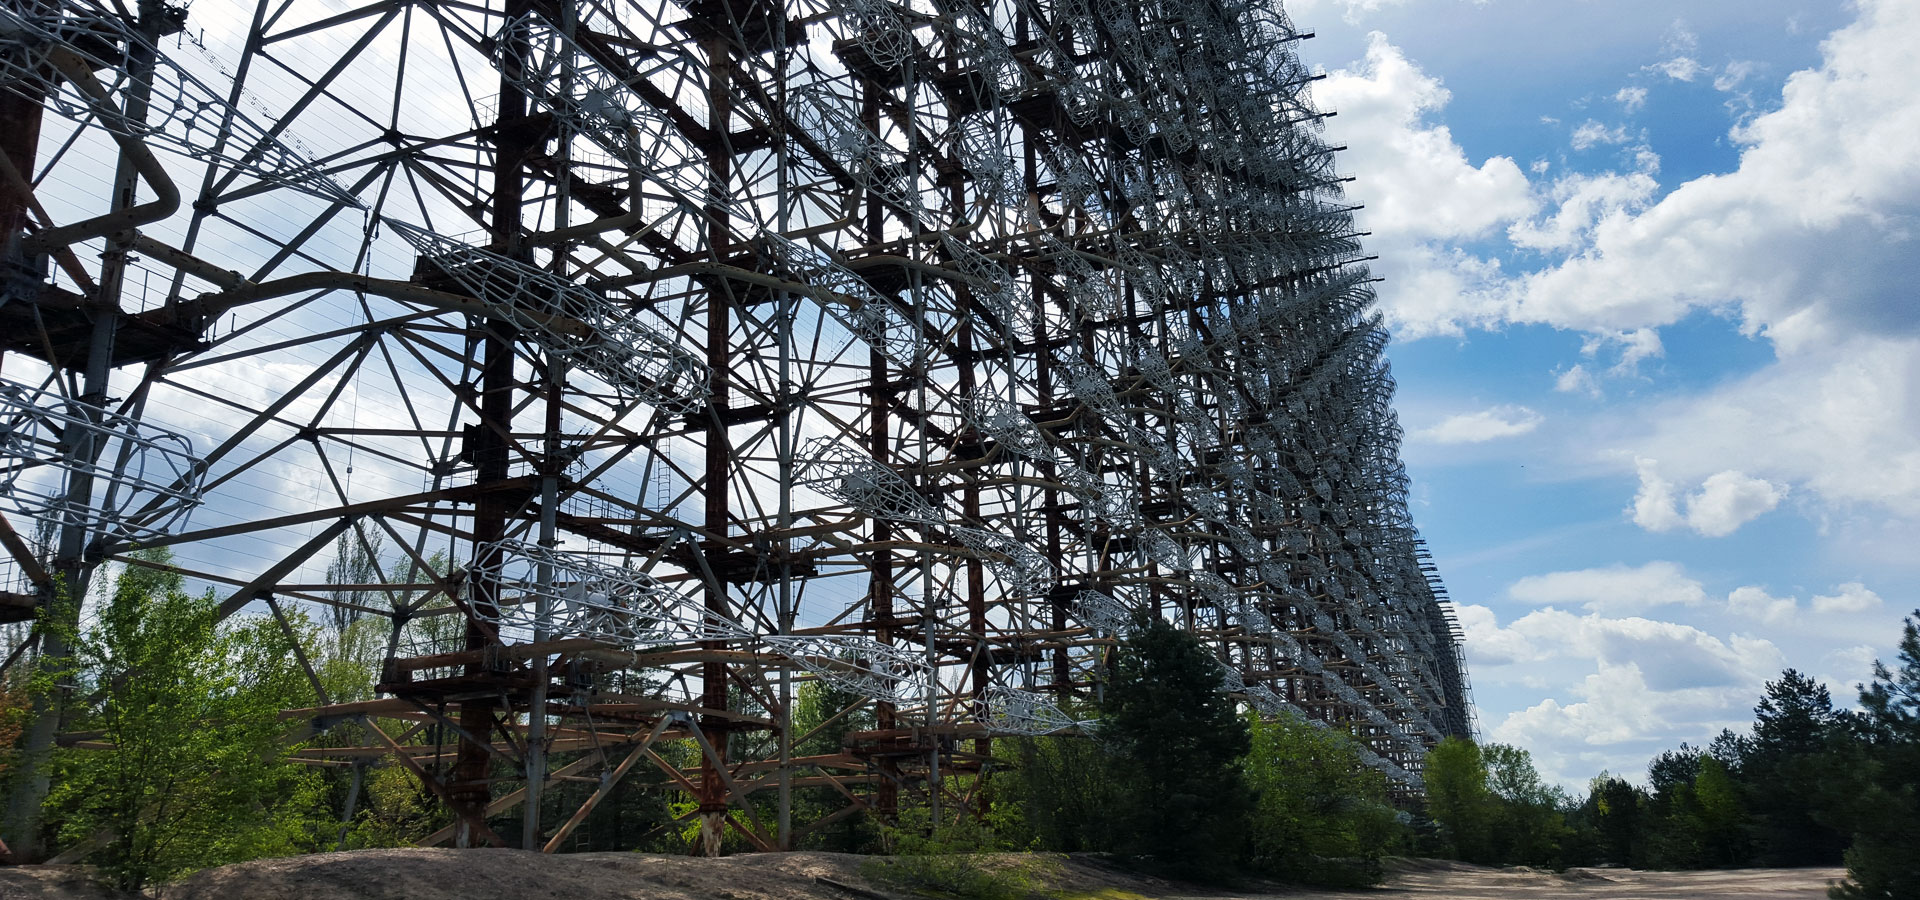 Dugar radar in Chernobyl